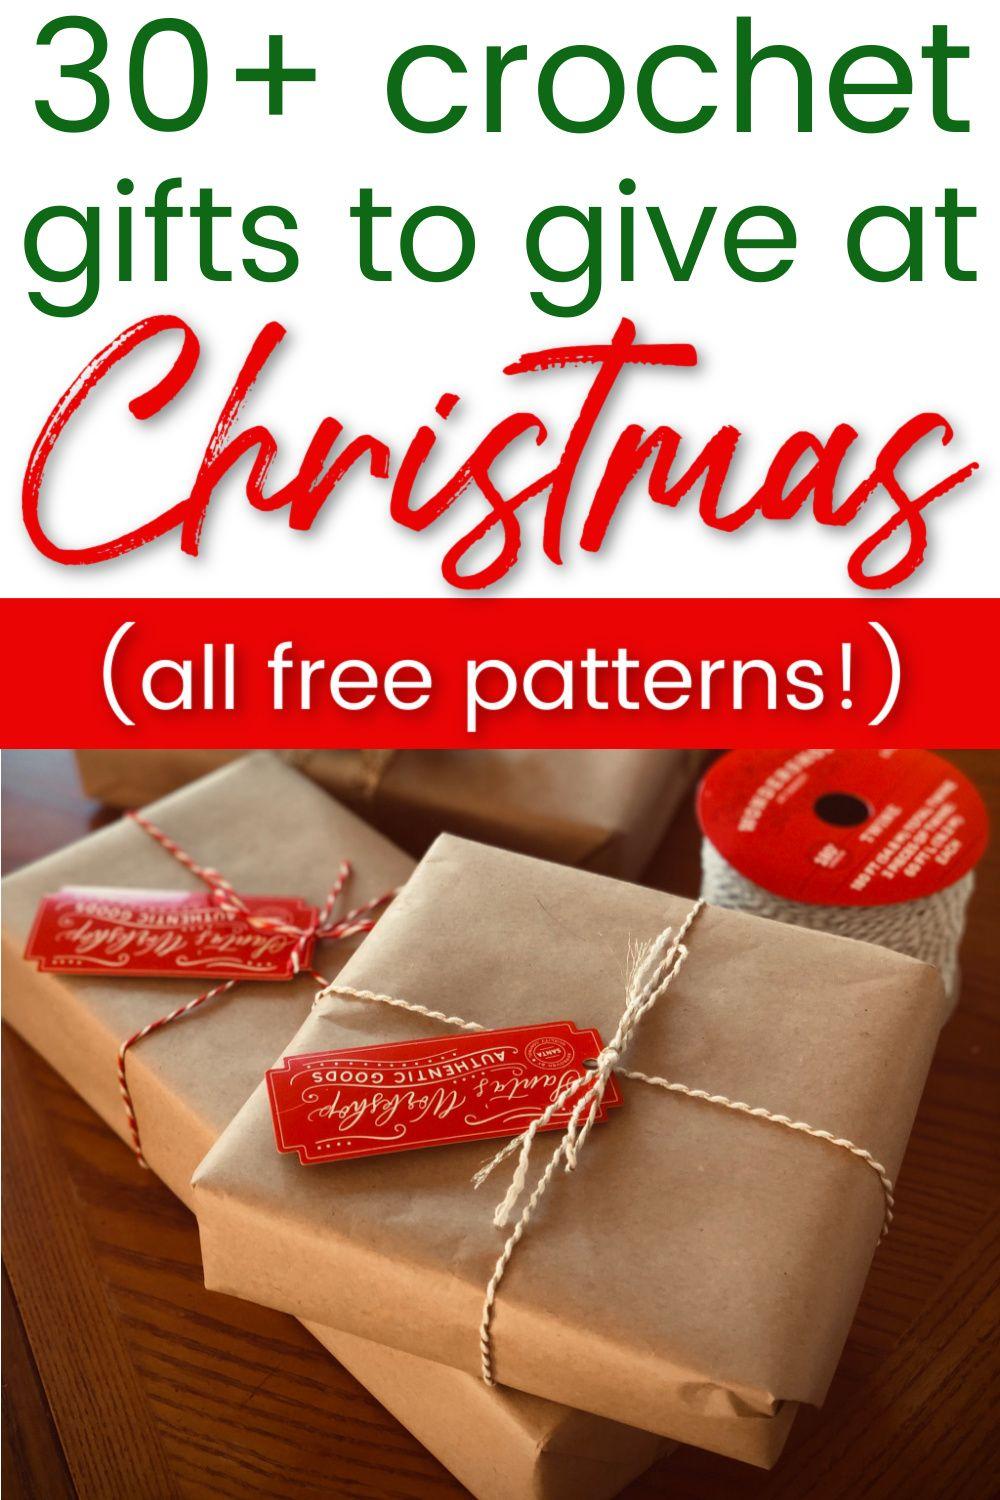 Crochet Gift Ideas For Christmas Over 30 Free Patterns In 2020 Crochet Gifts Crochet Christmas Gifts Gifts